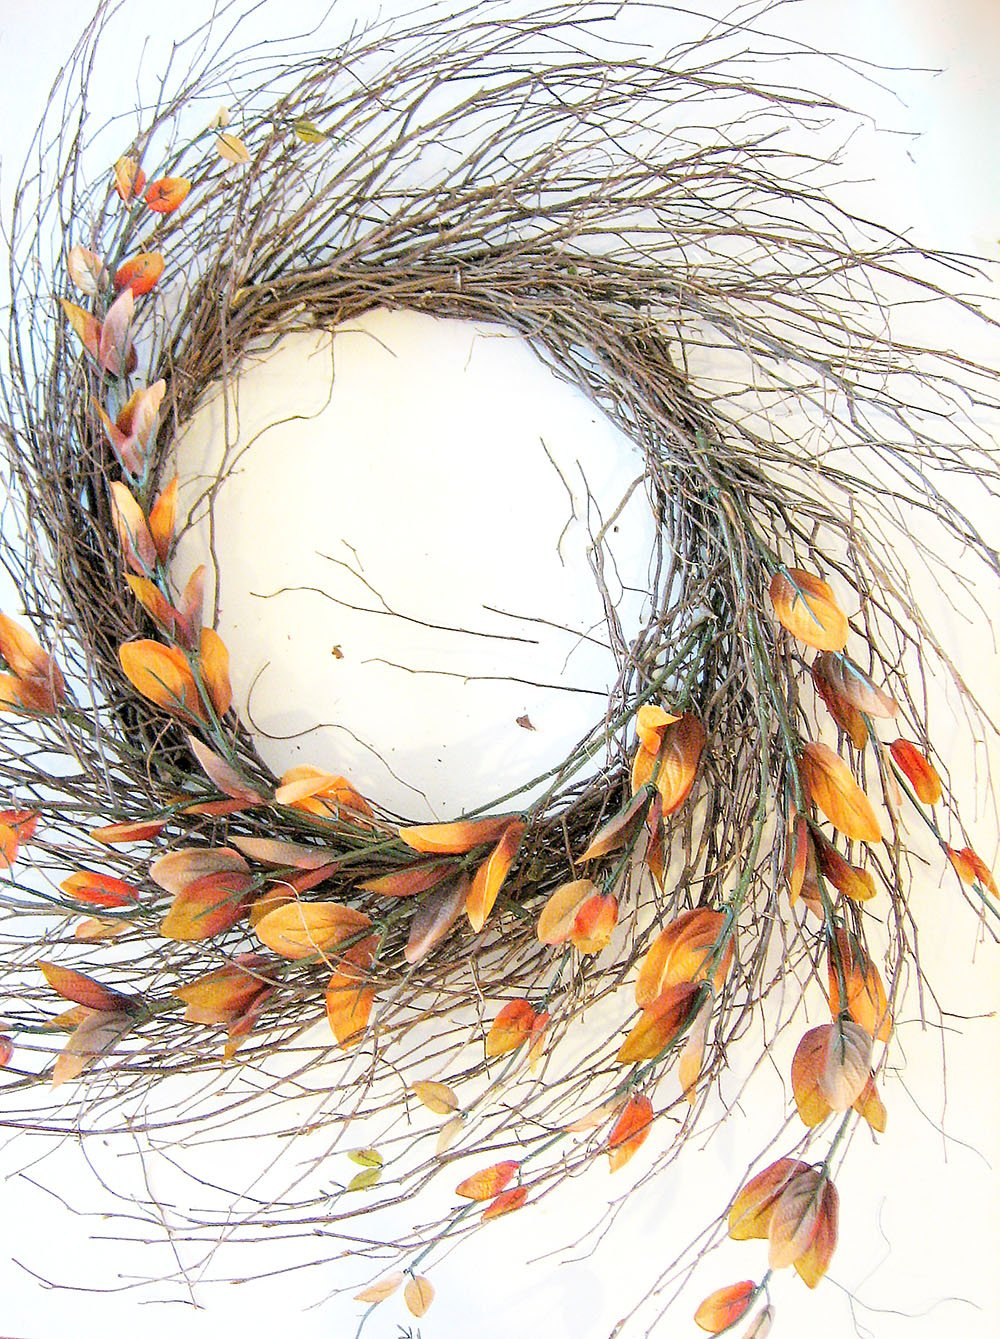 Add Silk Branches to the Curve of the Wispy Wreath